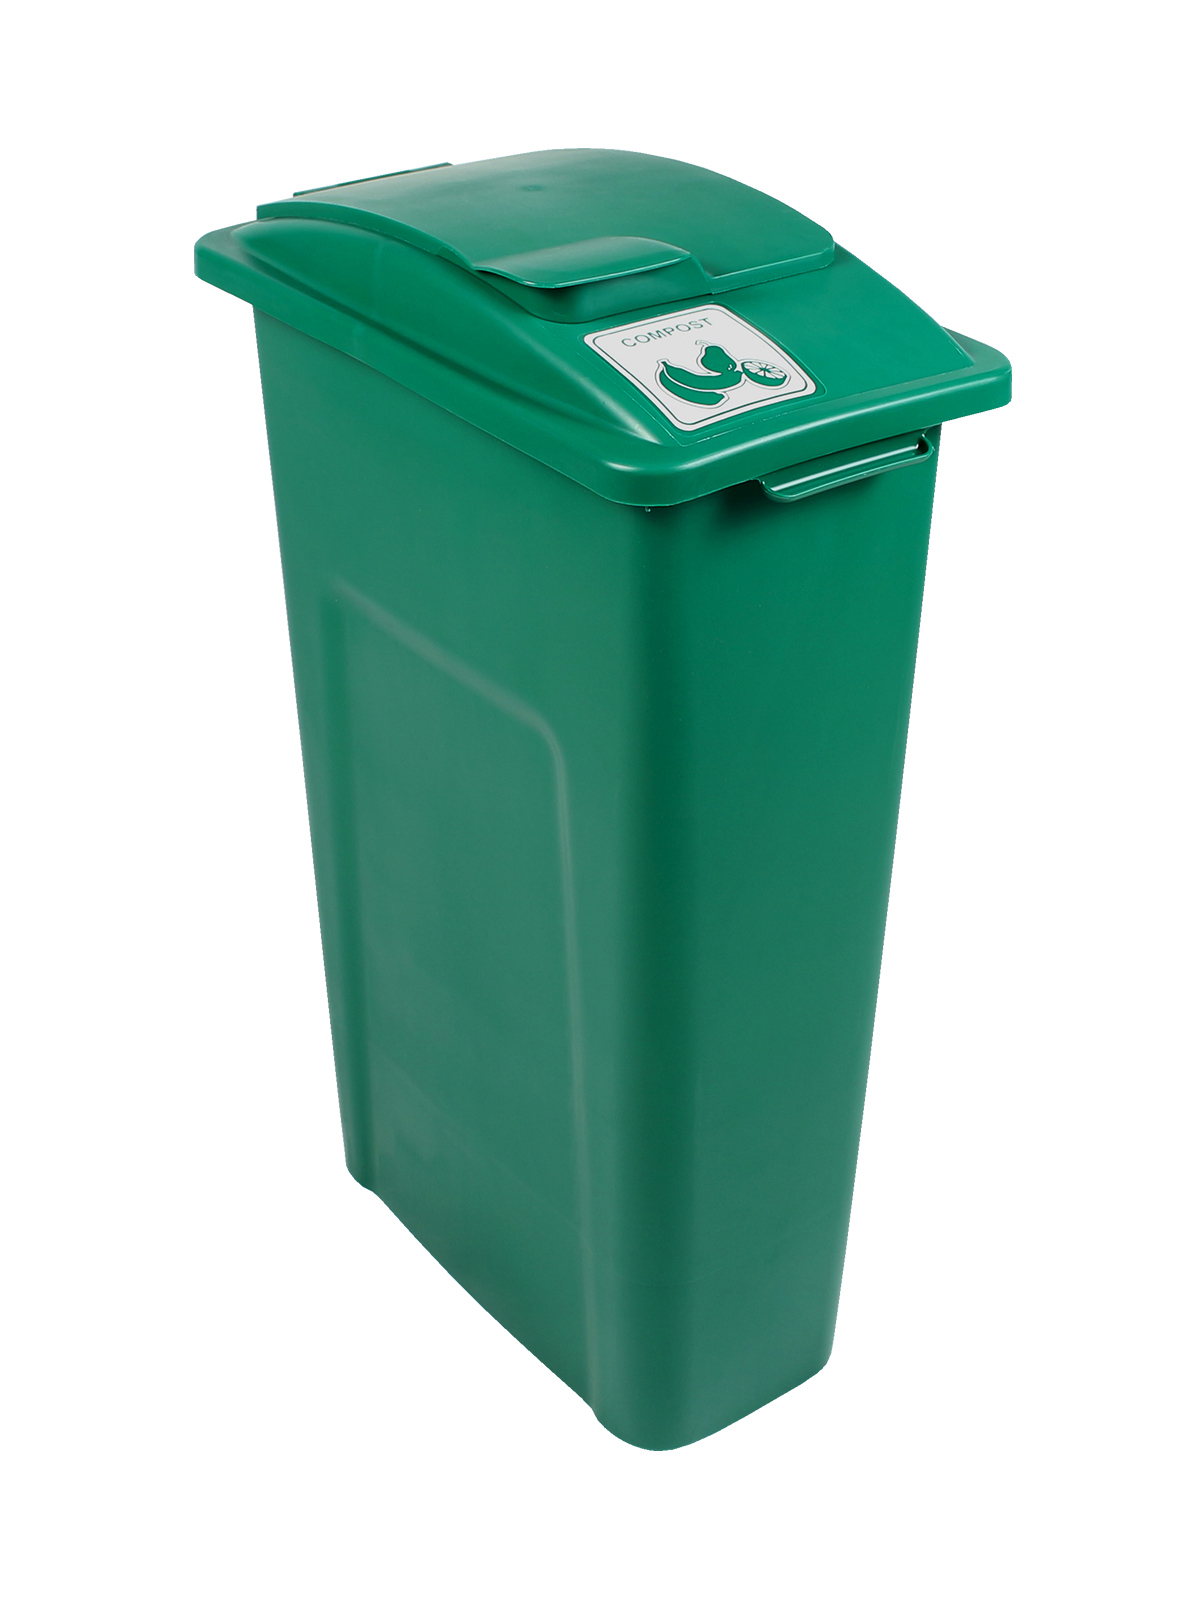 WASTE WATCHER - Single - Compost - Solid Lift - Green